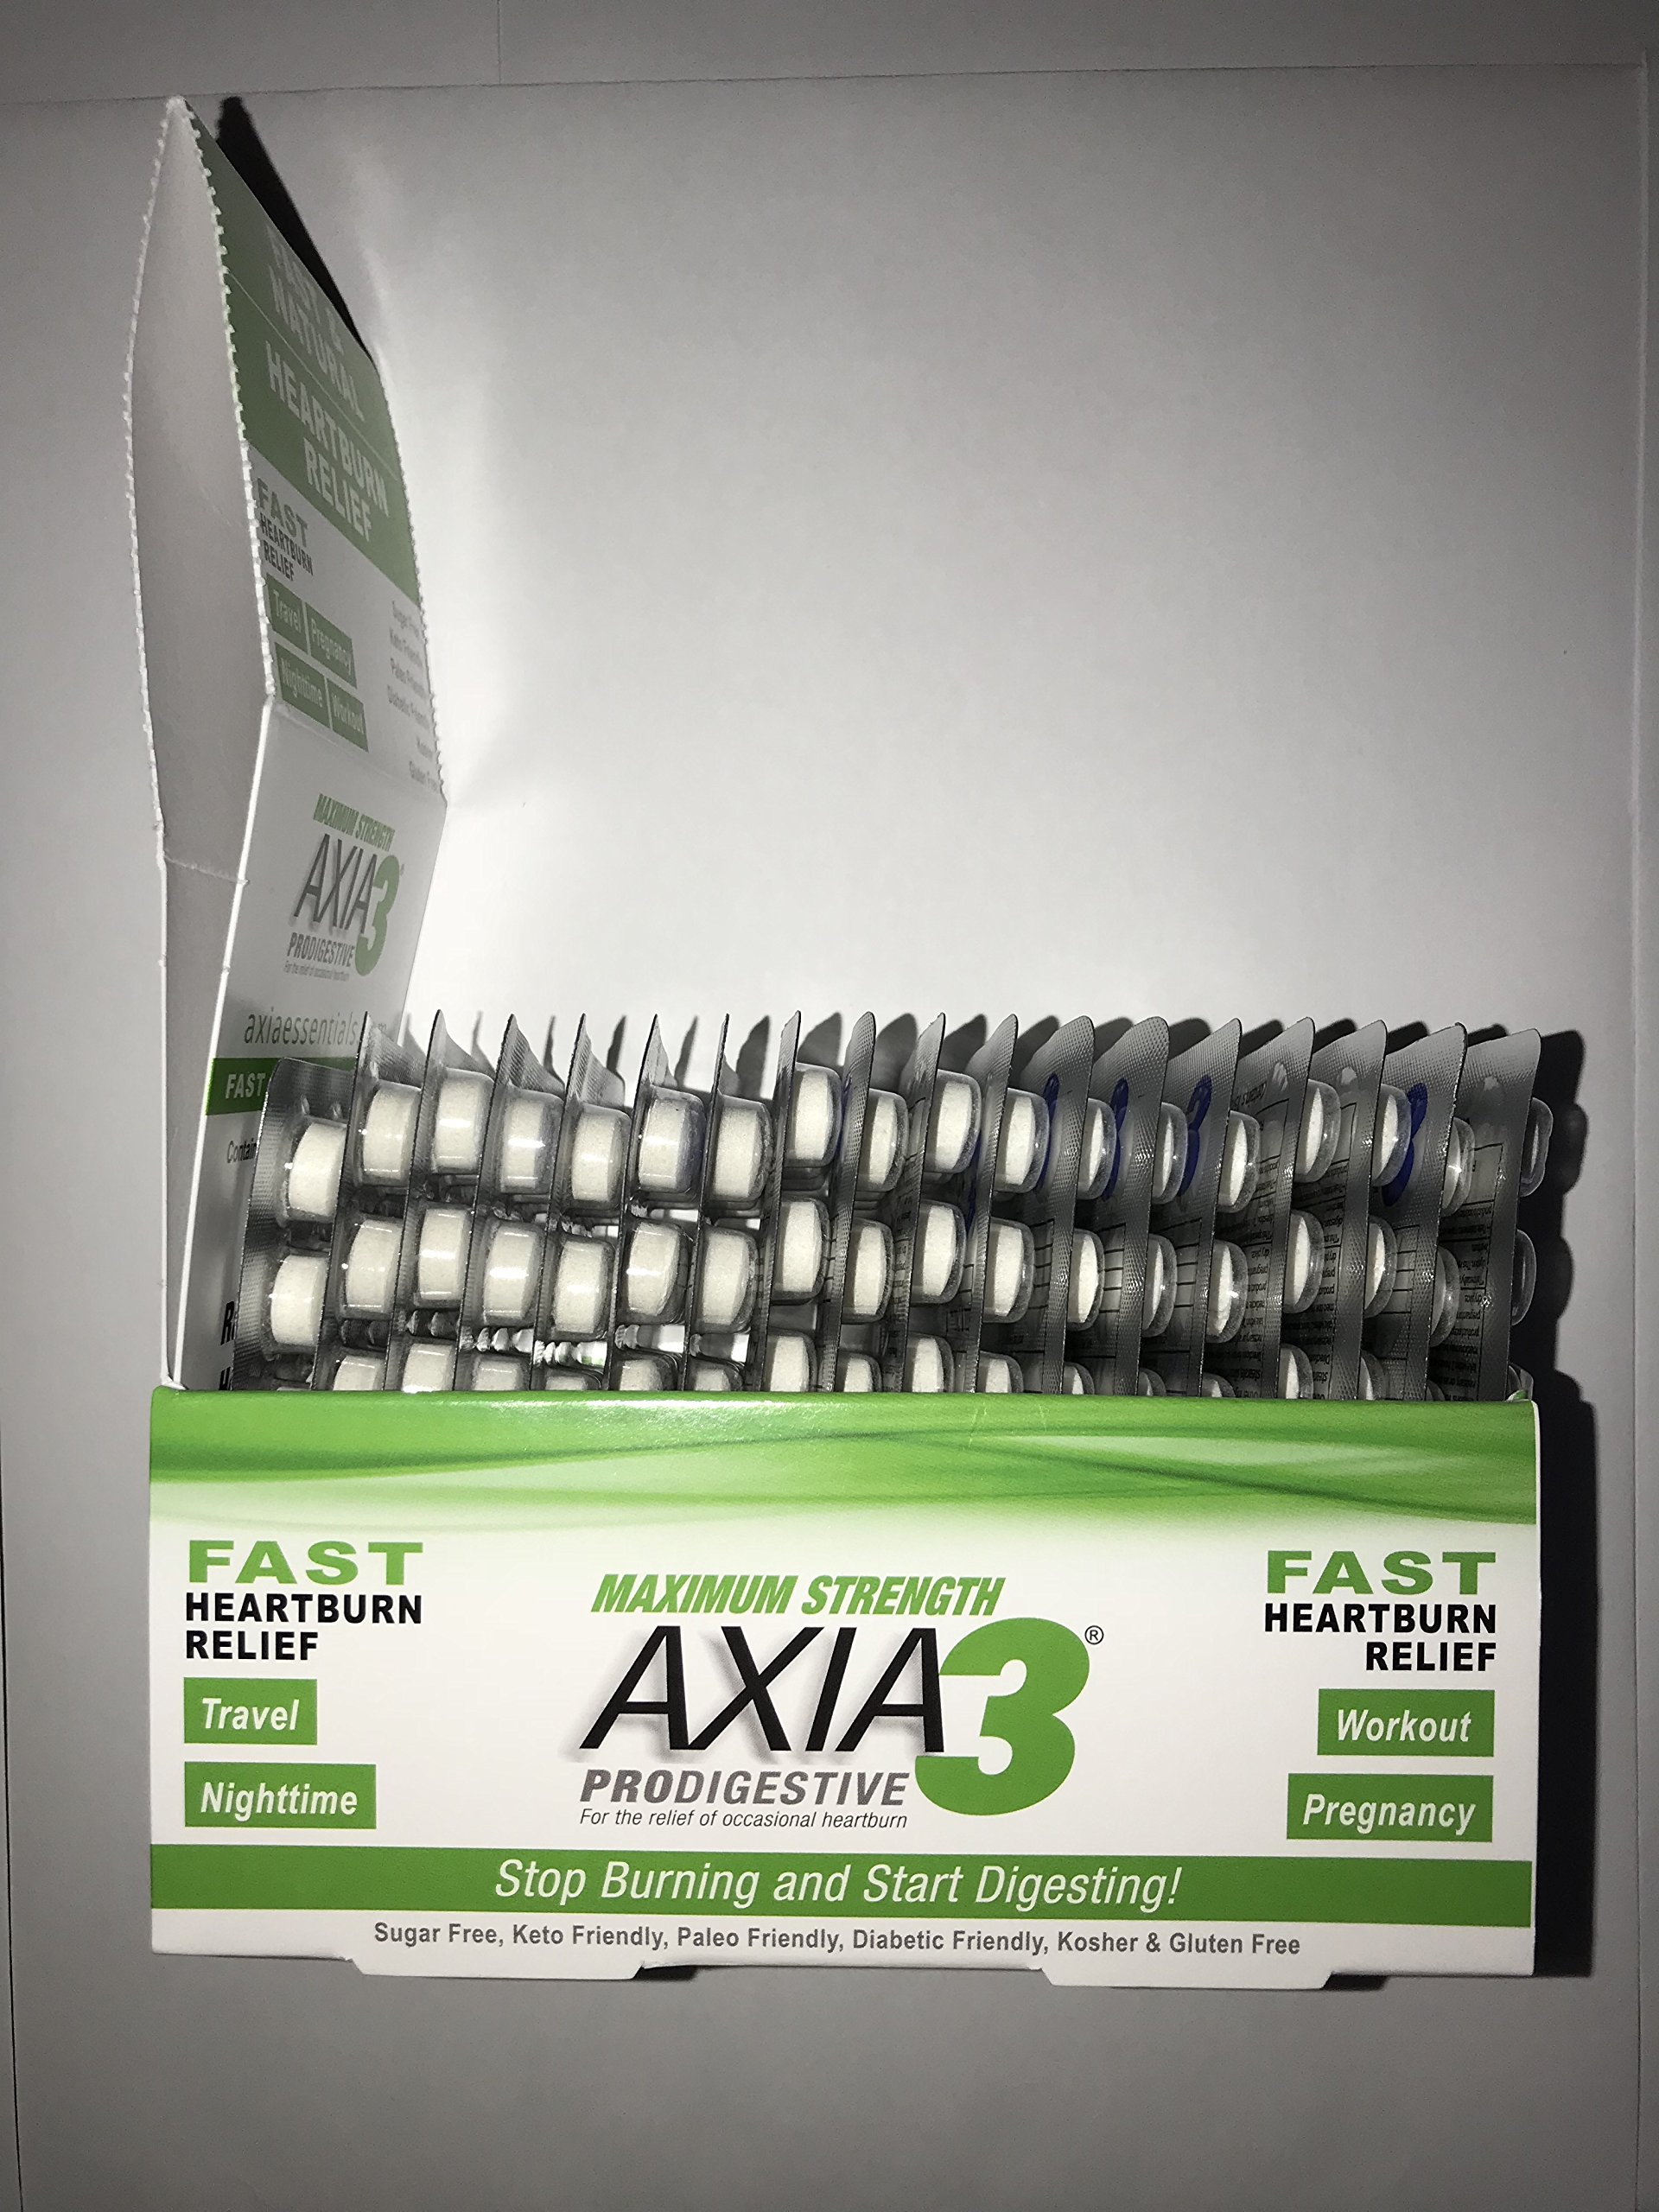 Axia Essentials Max Strength Prodigestive Heartburn Relief, White, 270 Count by ProDigestive